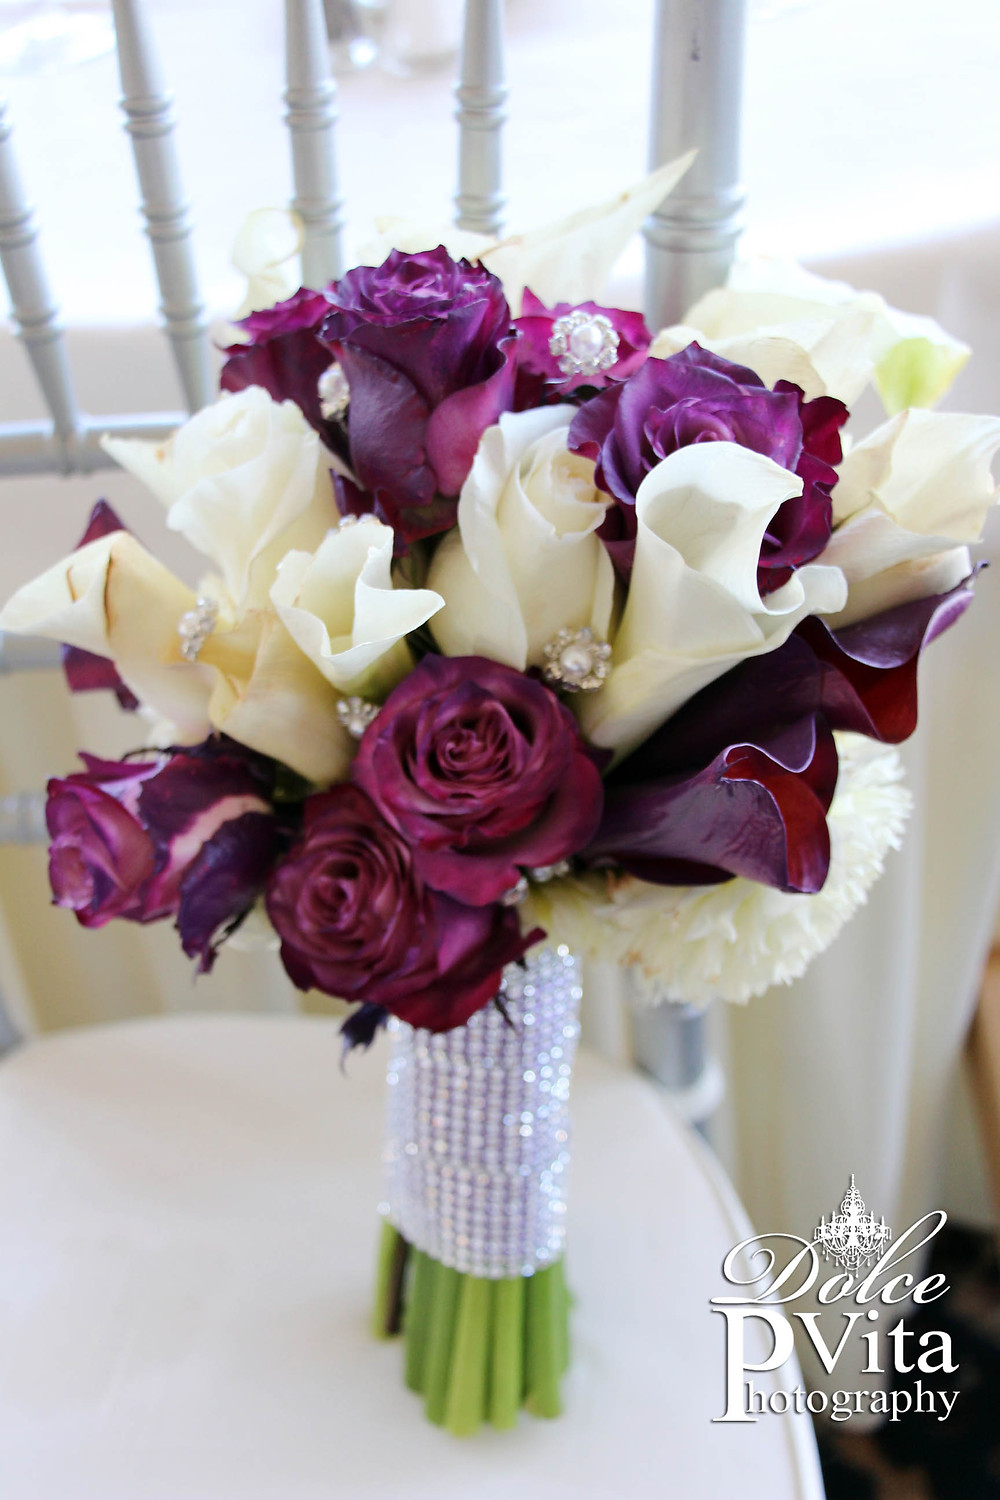 White calla lilies, white plum roses bridal bouquet with pear and rhinestone details by Dolce Vita Events in Orange County